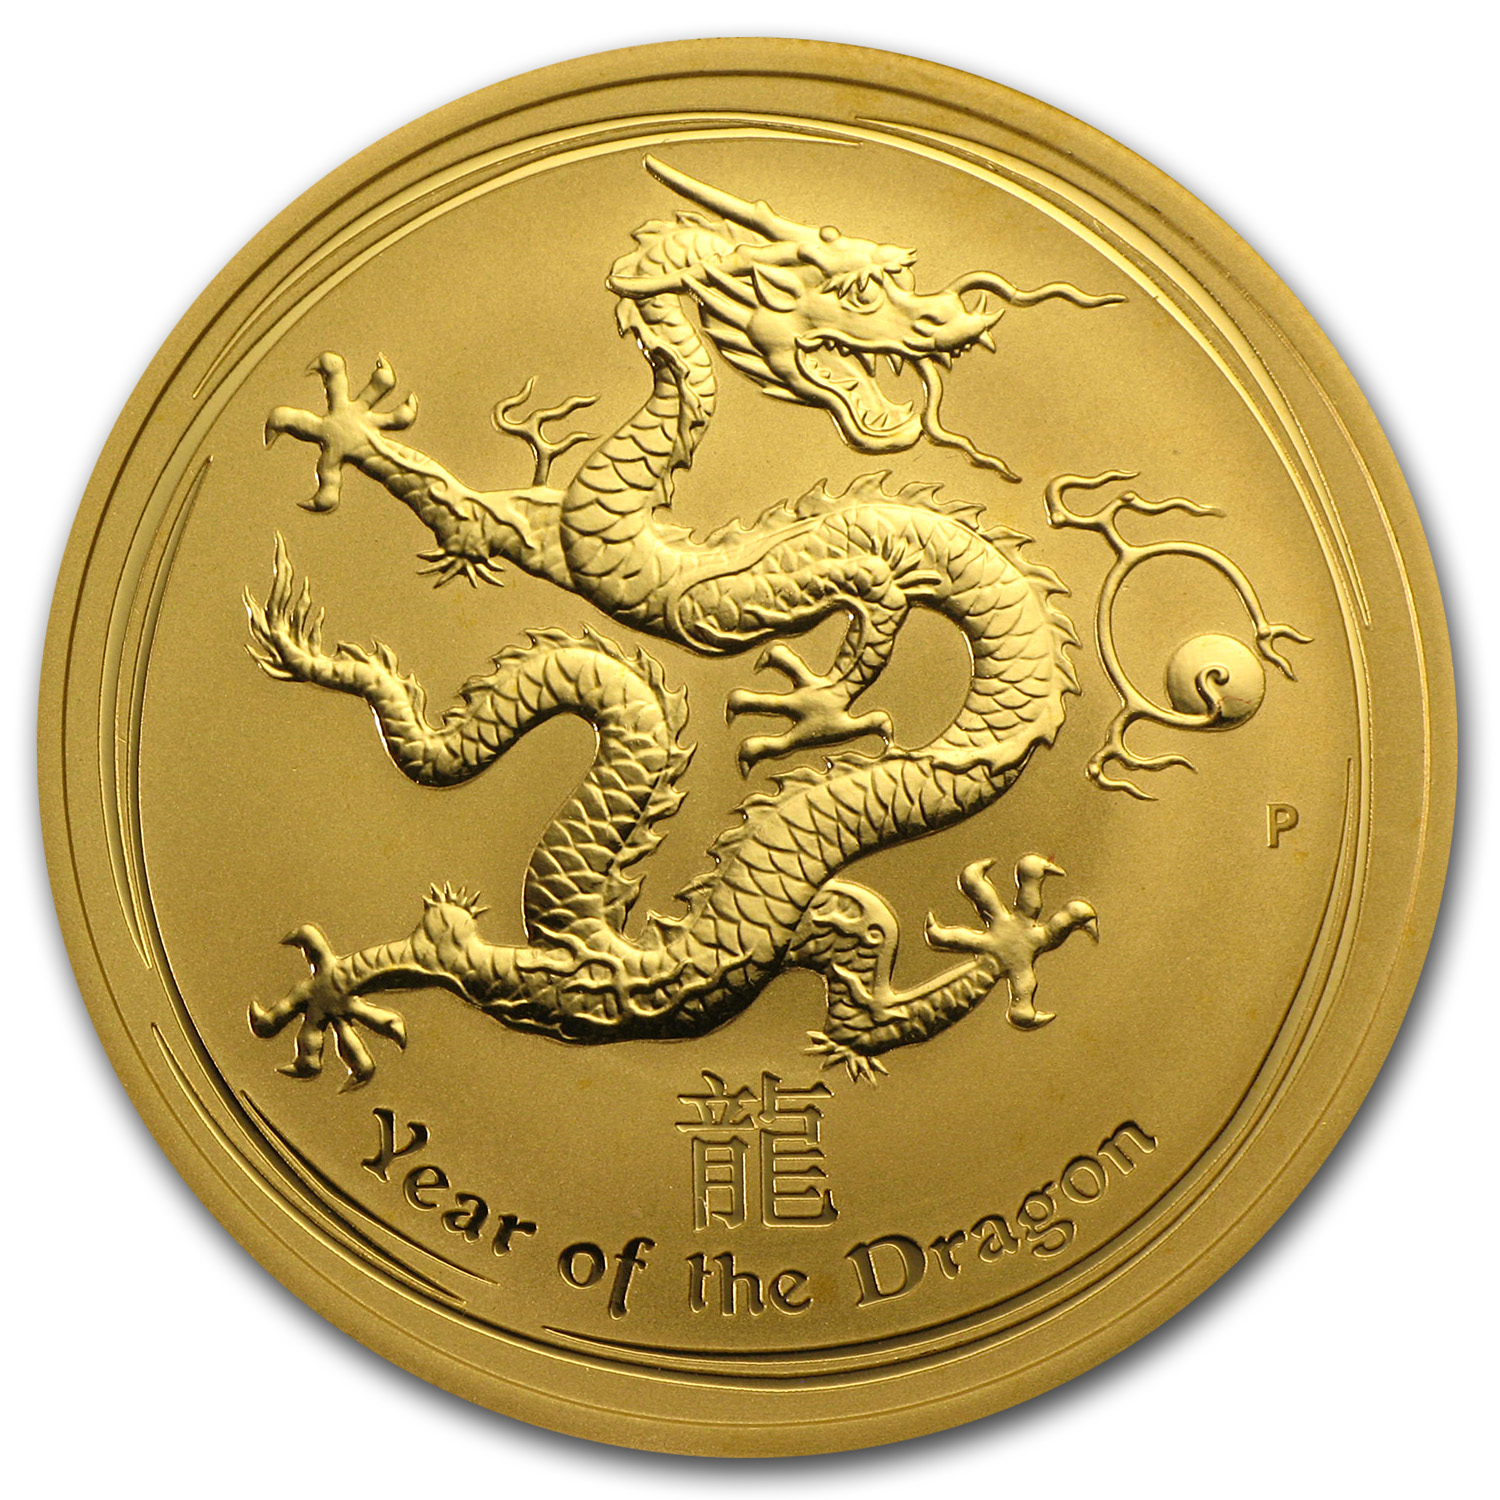 2012 1 oz Gold Lunar Year of the Dragon SII (Light Abrasions)